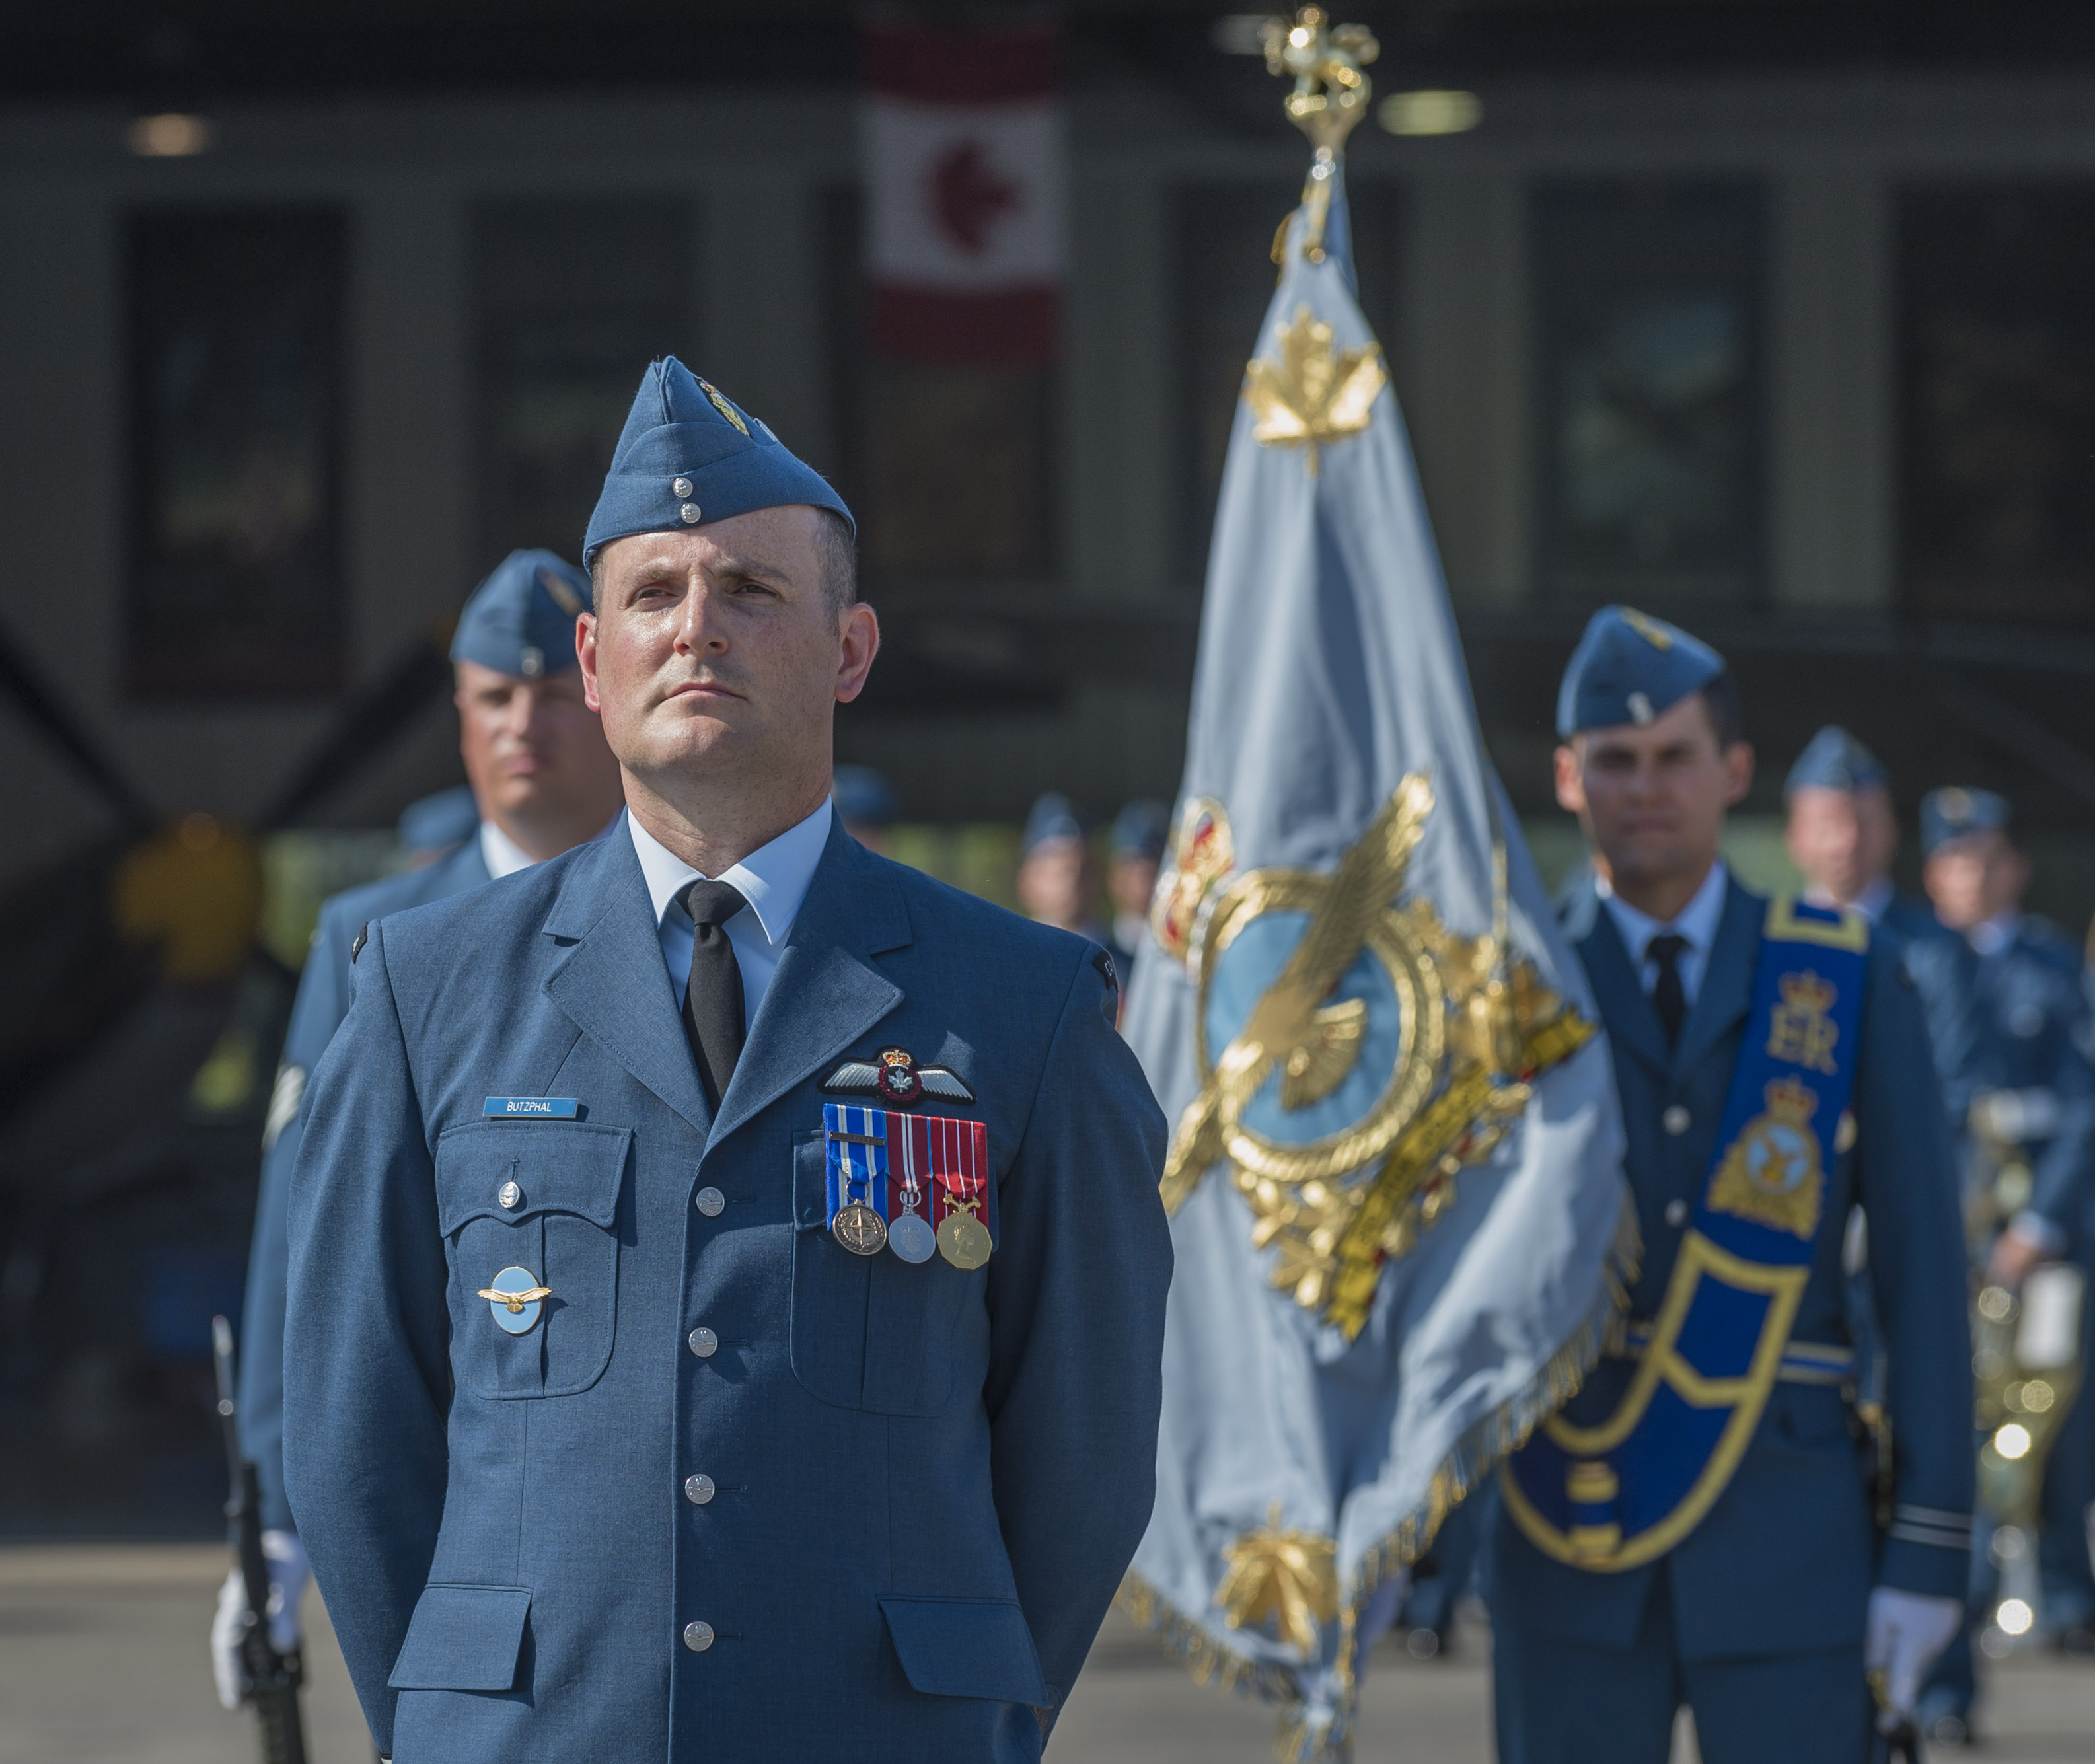 Parade commander Major Peter Butzphal of RCAF Headquarters in Ottawa stands at ease during the national Battle of Britain commemorative ceremony in Gatineau, Quebec, on September 17, 2017. The day began with heavy mist but became unseasonably hot as the day wore on – eventually reaching nearly 30C with a humidex. PHOTO: Corporal Alana Morin, FA03-2017-0119-103